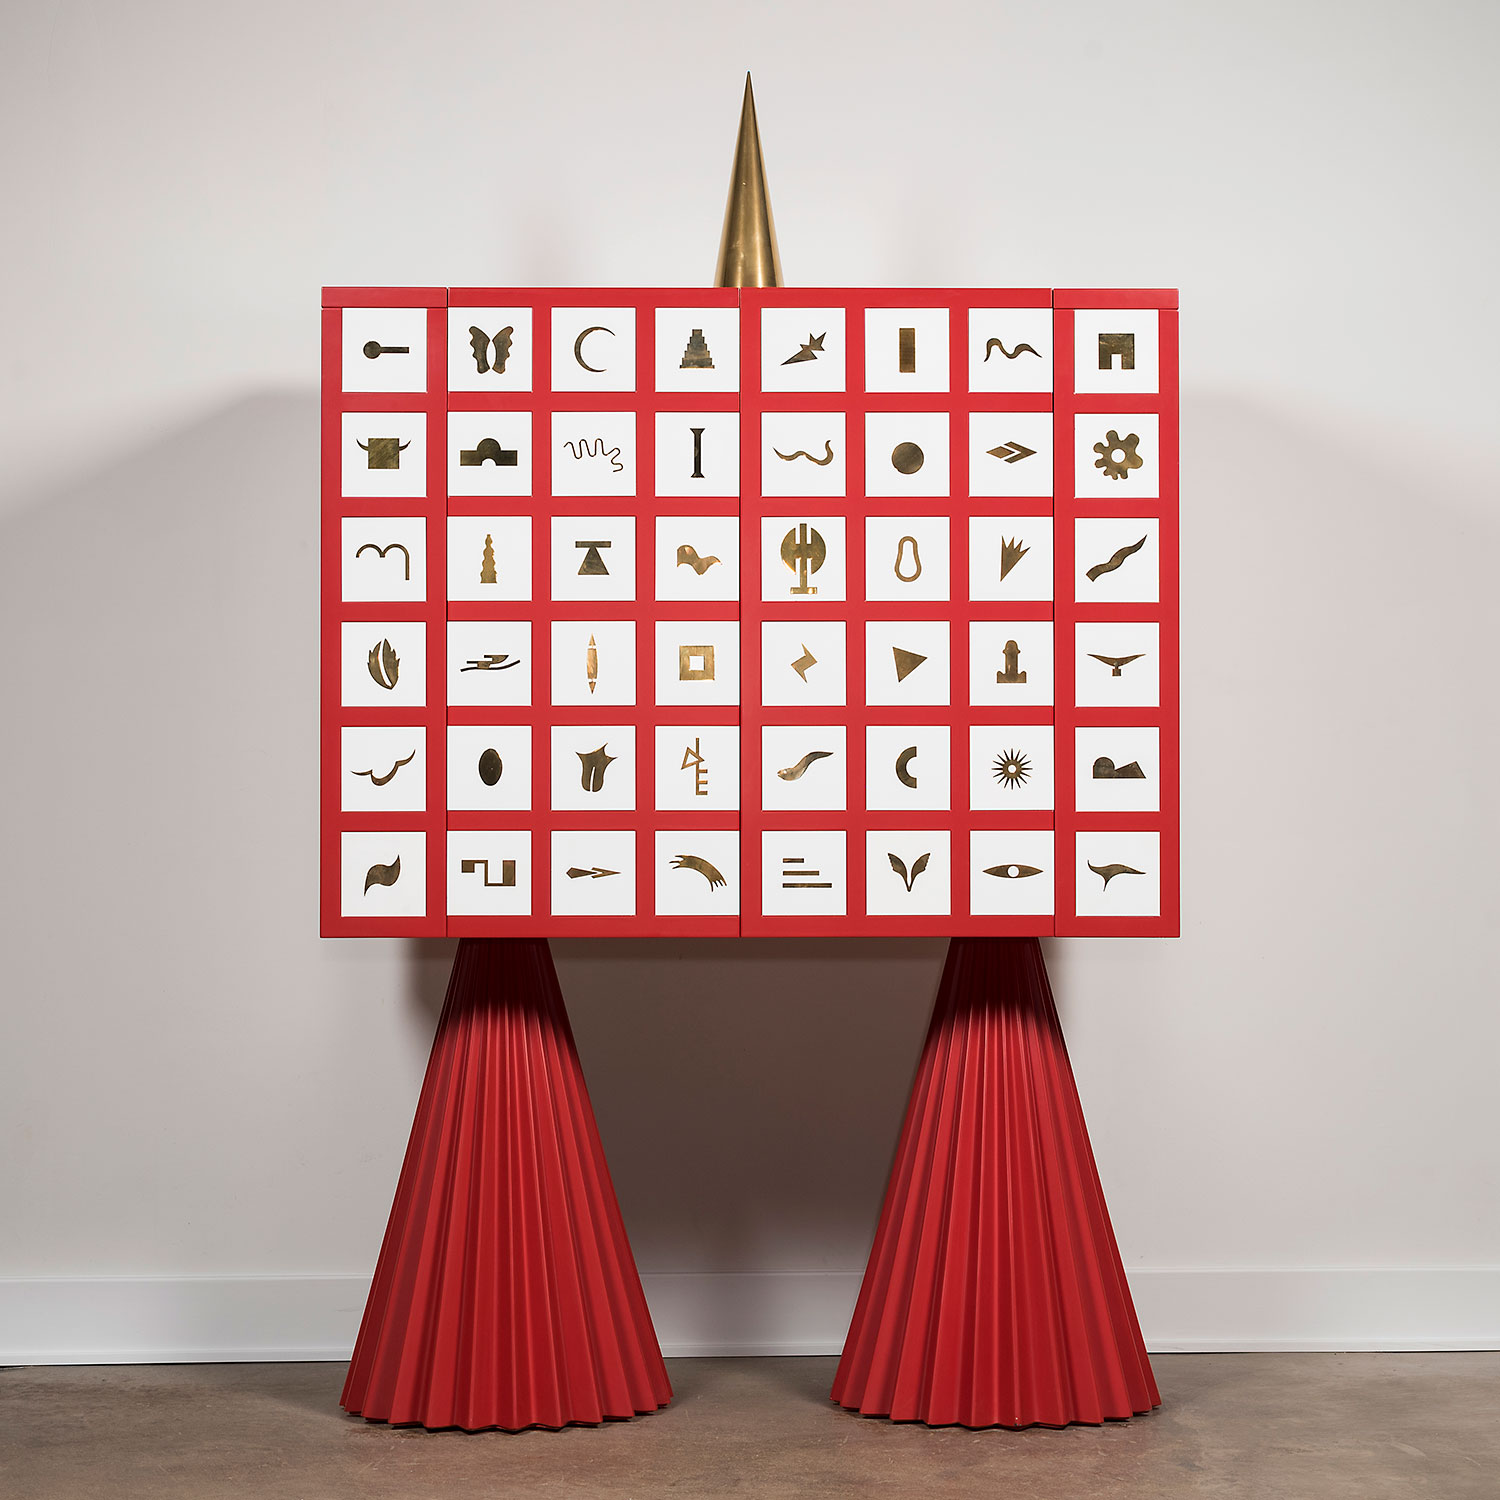 Red and white Mania cabinet with good accents, design by Alessandro Mendini